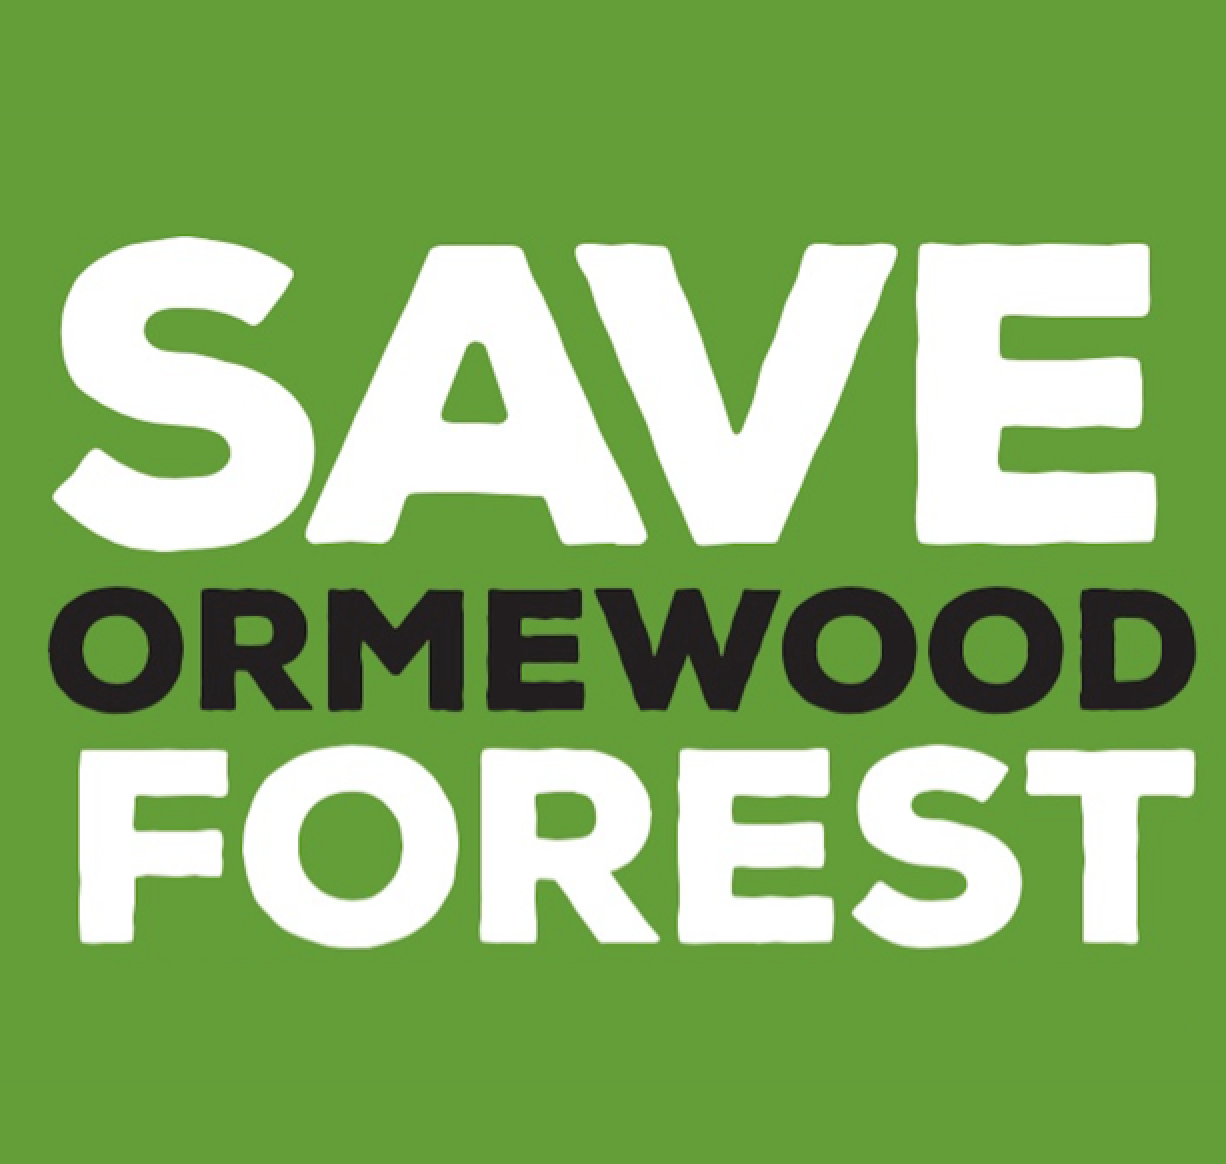 Save Ormewood Forest